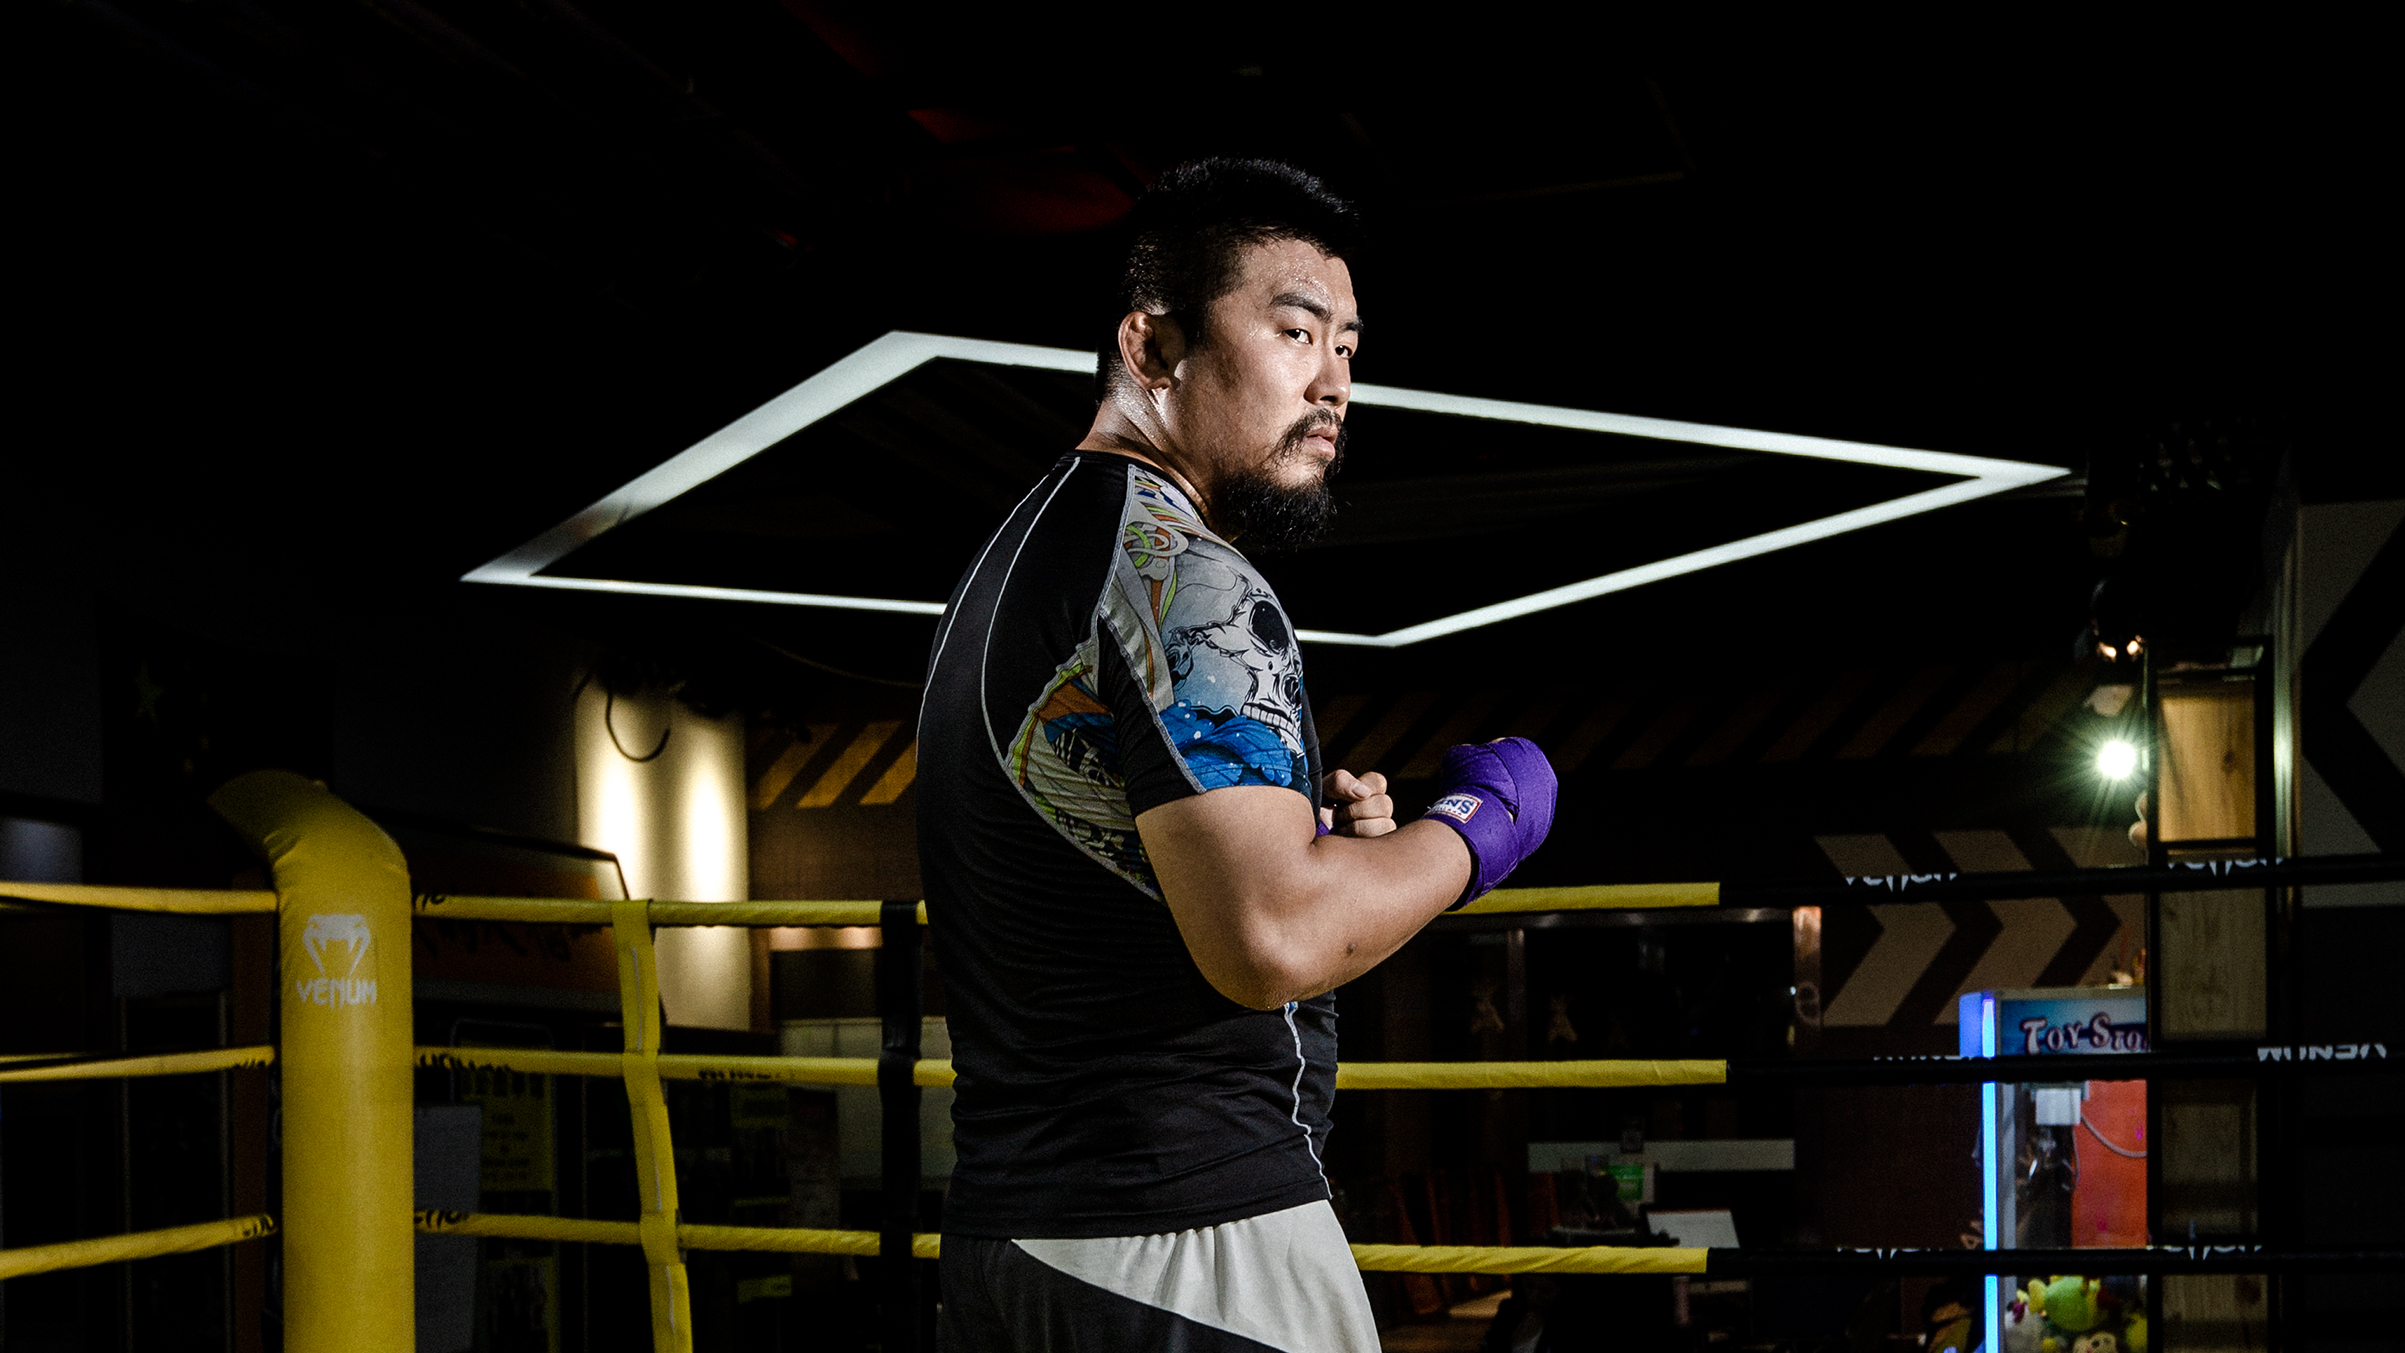 This Chinese Mma Fighter Is Taking On Kung Fu Grandmasters Time